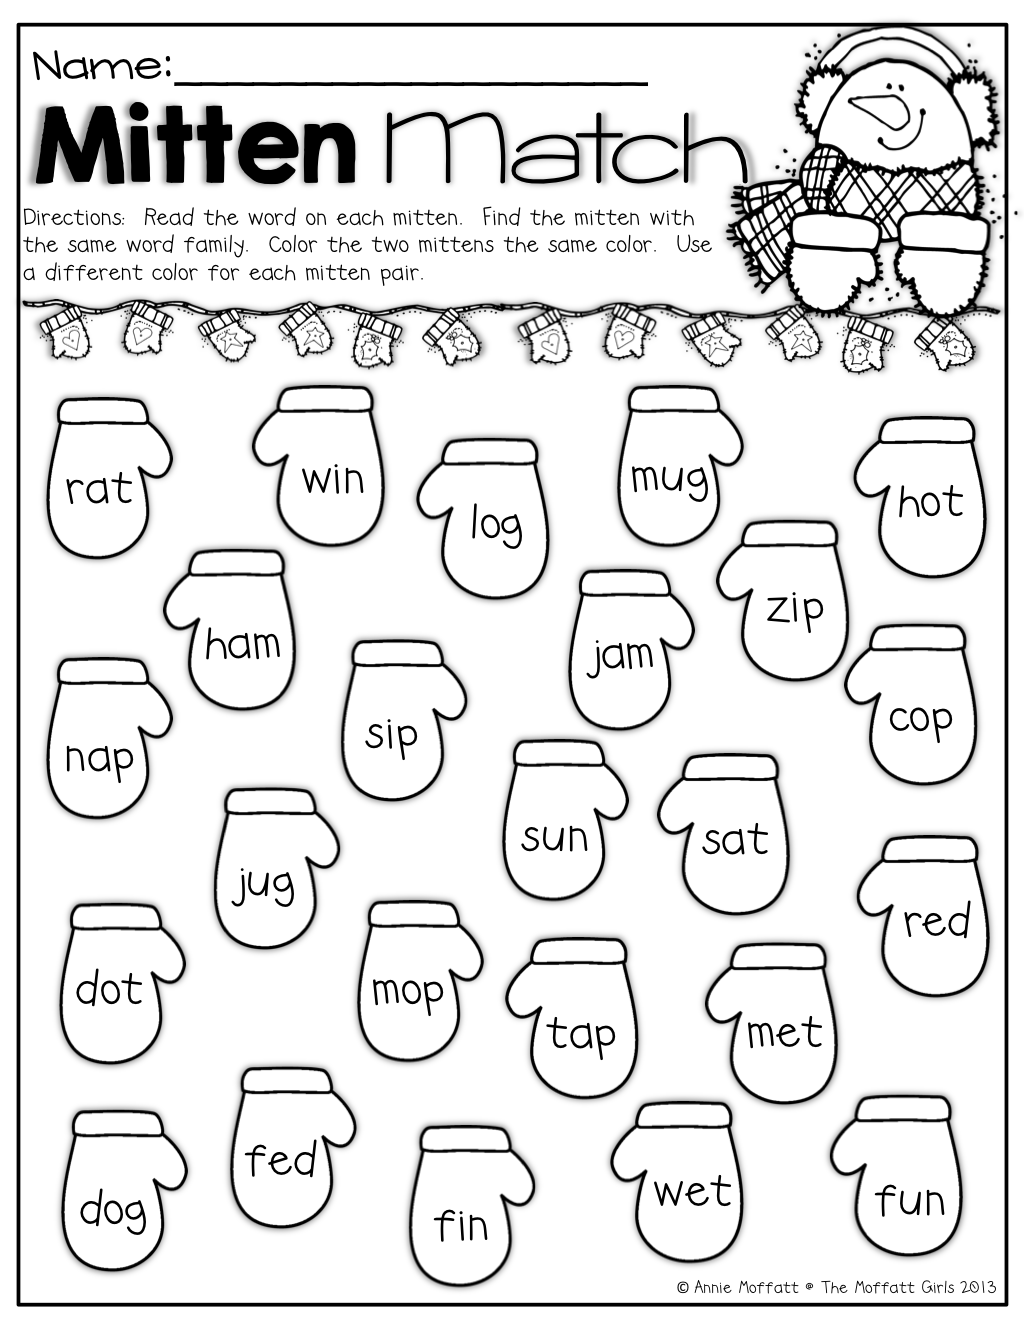 Mitten Match Find And Color The Mittens With The Same